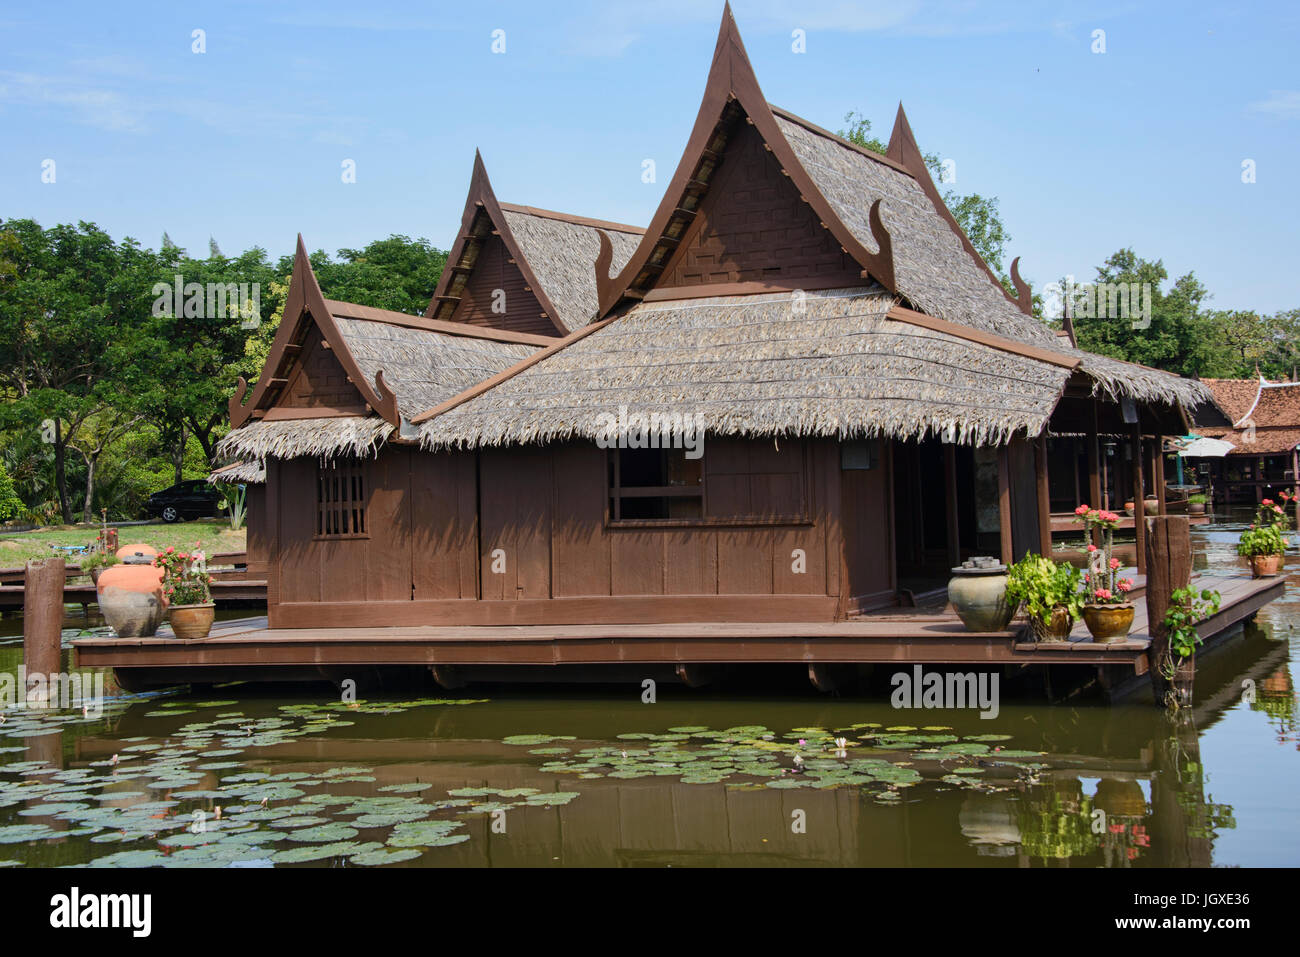 traditionelle thai h user in thailand stockfoto bild 148099258 alamy. Black Bedroom Furniture Sets. Home Design Ideas